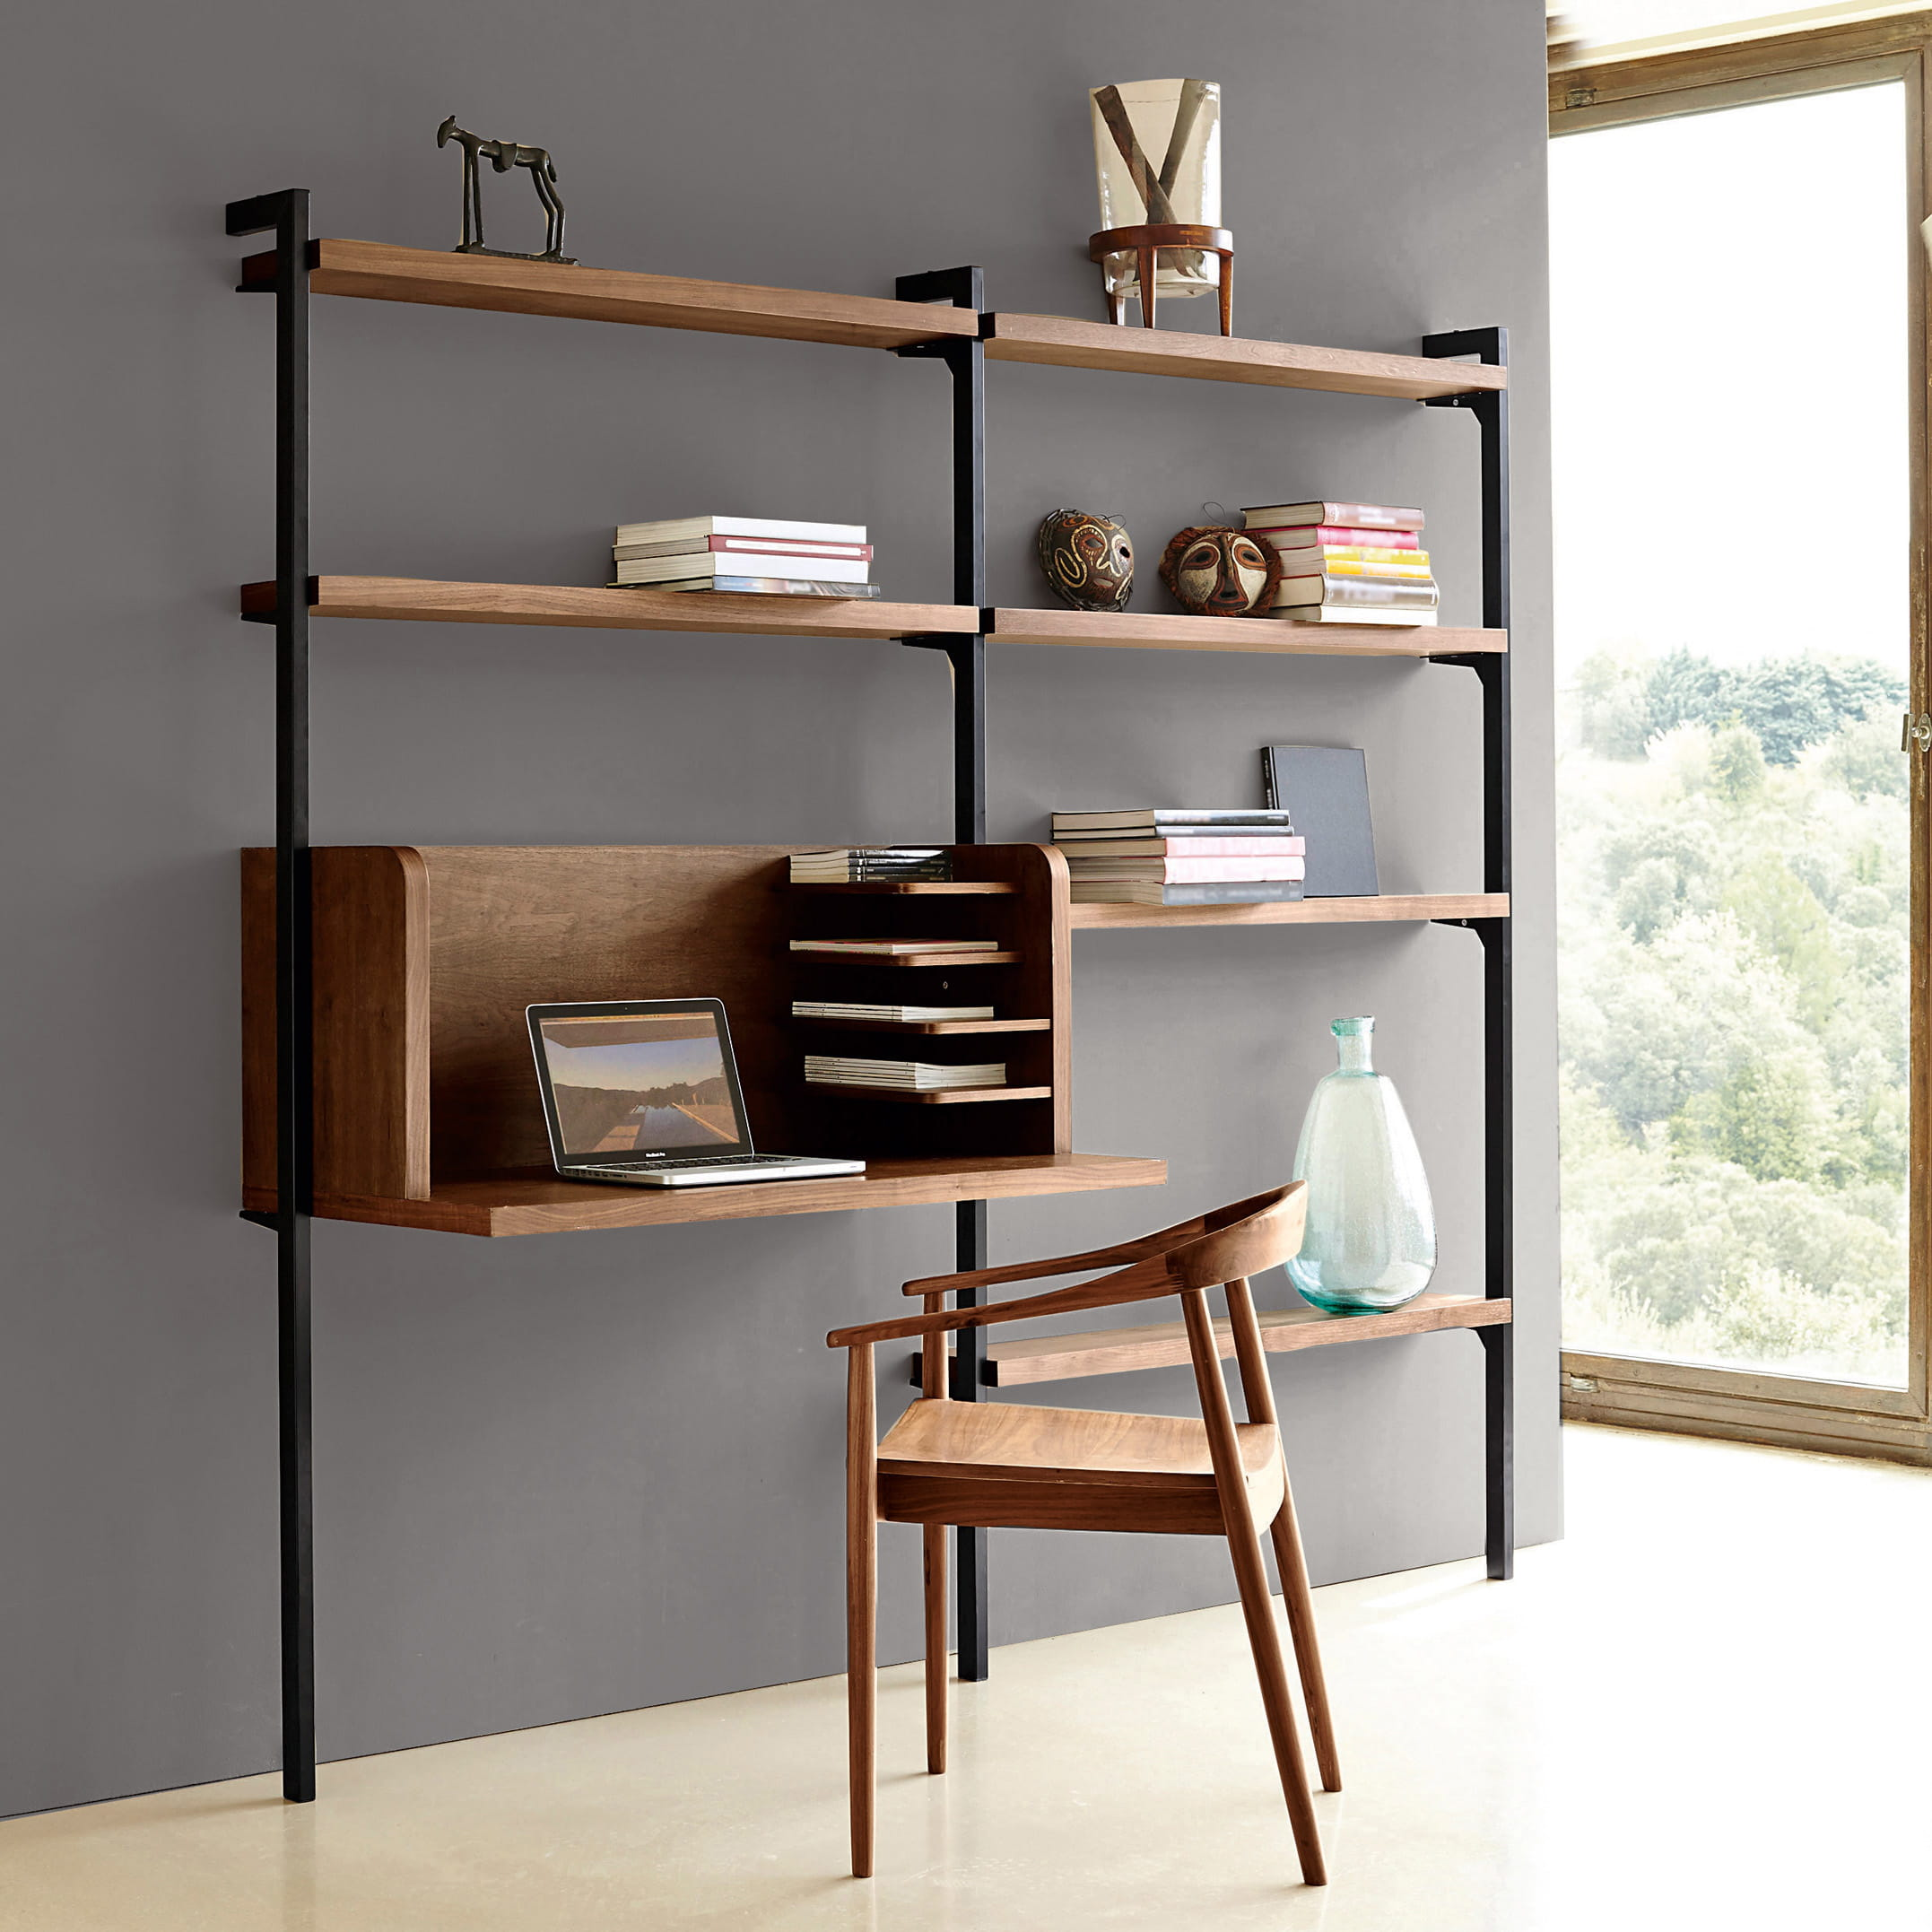 module de bureau en noy plaqu am pm. Black Bedroom Furniture Sets. Home Design Ideas